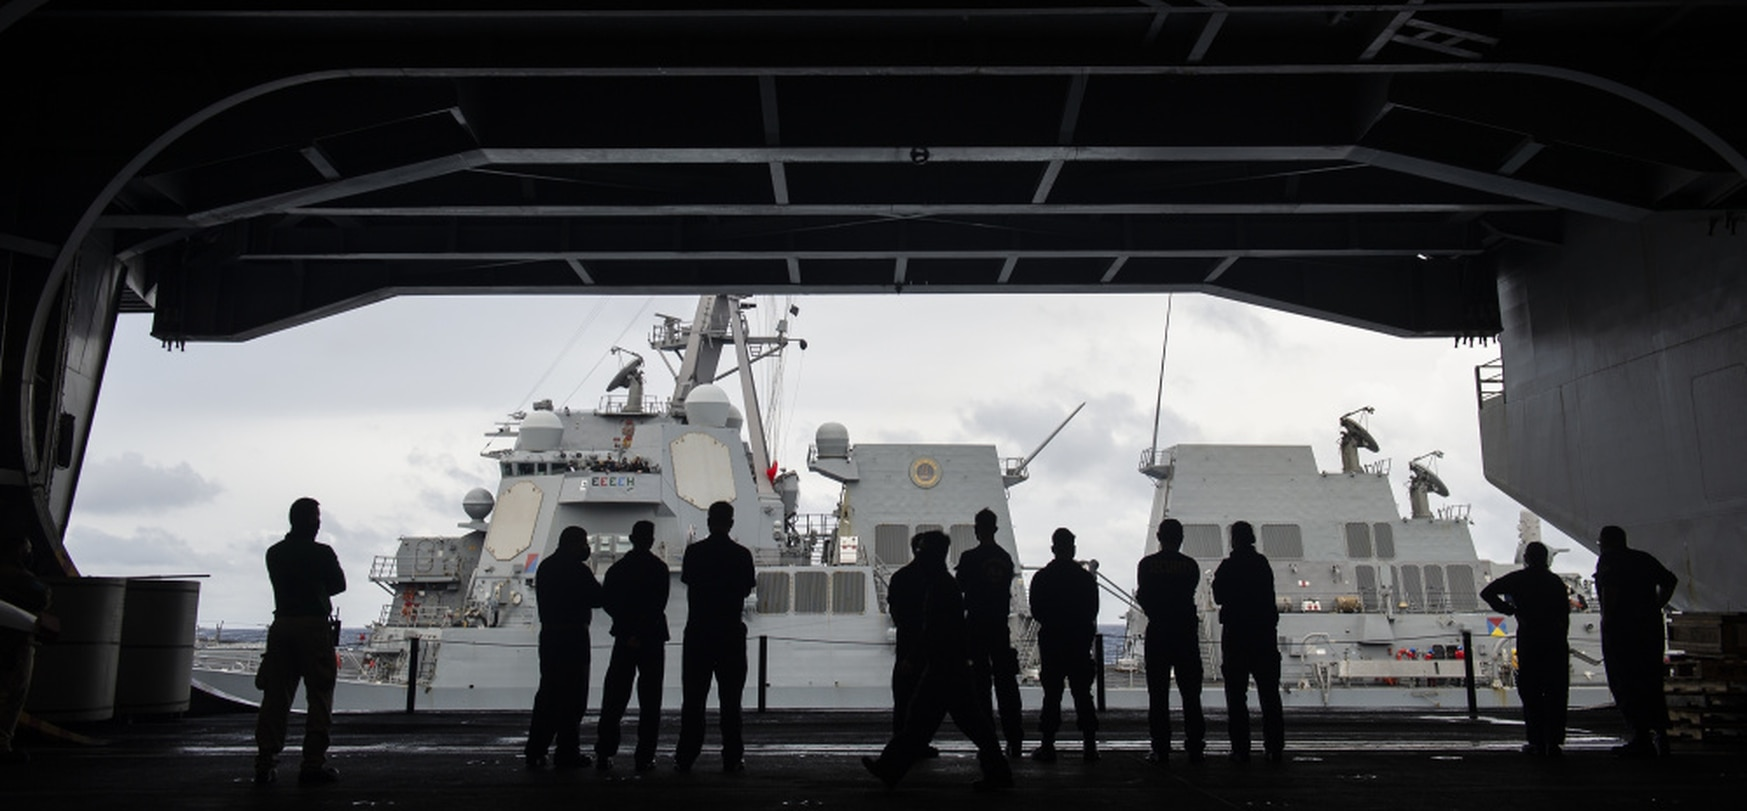 Sailors aboard the U.S. Navy aircraft carrier Theodore Roosevelt in the South Chia Sea watch the destroyer John Finn approach for a replenishment at sea. (MC1 Chris Cavagnaro/U.S. Navy)